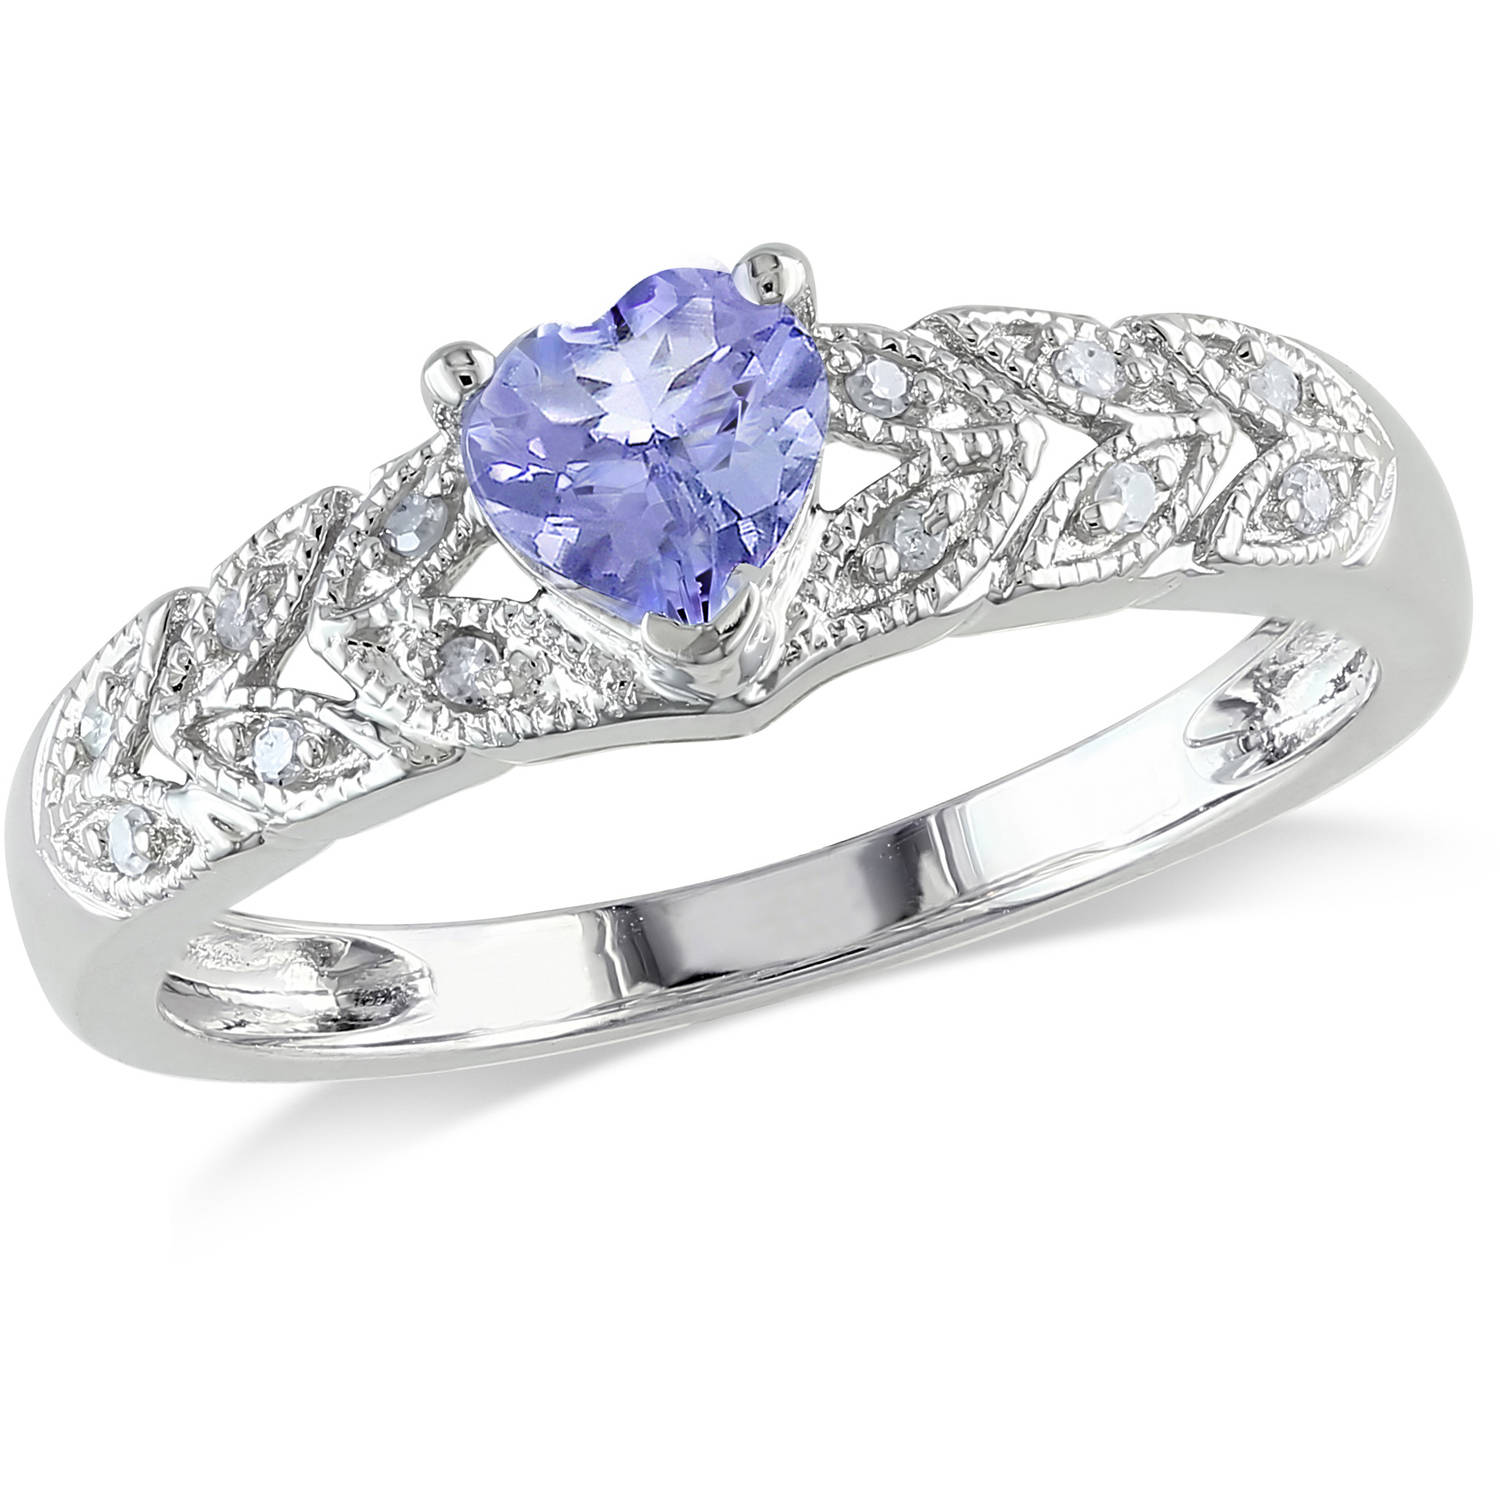 3 8 Carat T.G.W. Tanzanite and Diamond-Accent 10kt White Gold Heart Ring by Delmar Manufacturing LLC